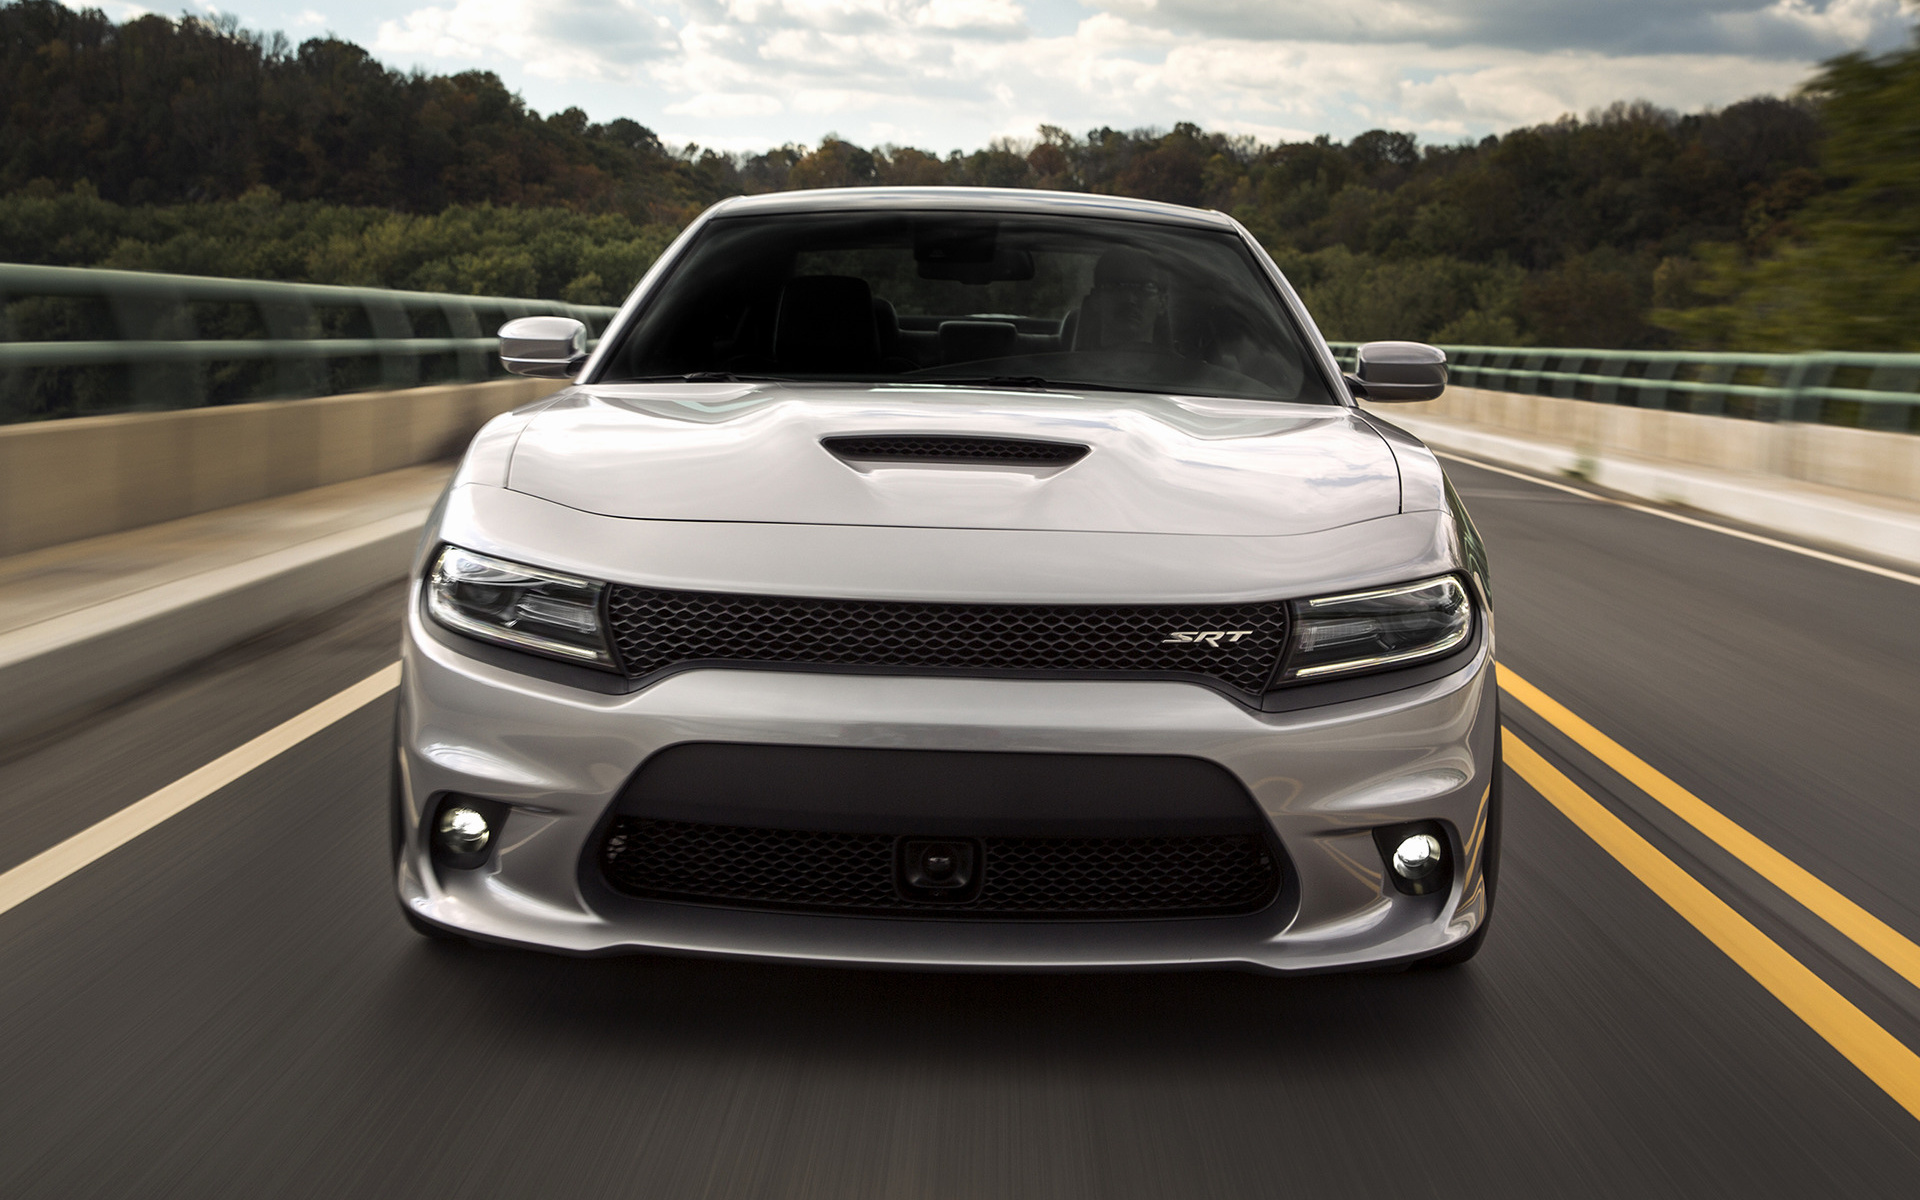 Dodge Charger Srt >> 2015 Dodge Charger SRT 392 - Wallpapers and HD Images | Car Pixel